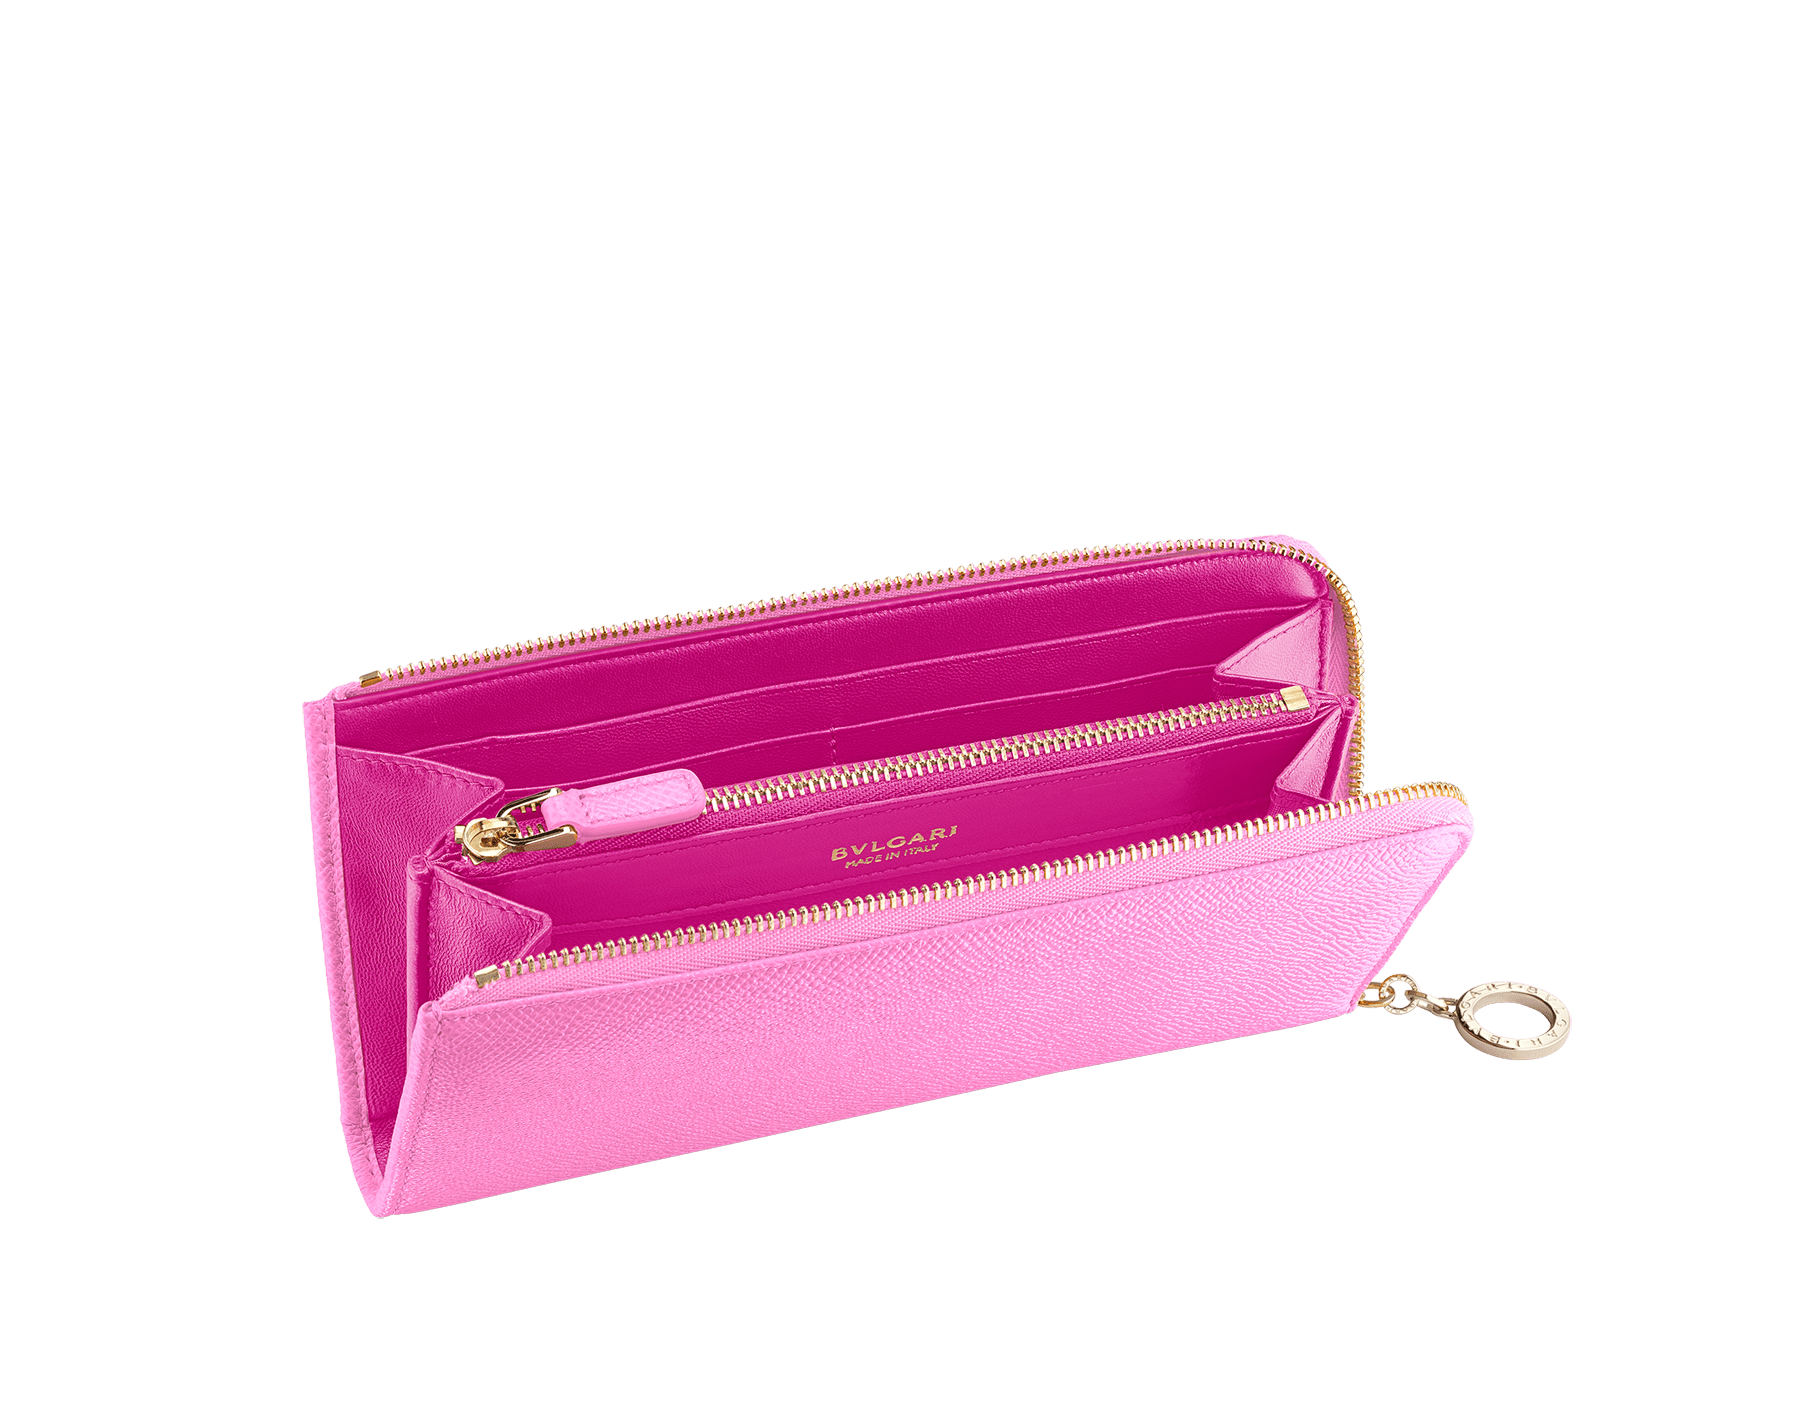 """BVLGARI BVLGARI"" large L-shaped zipped wallet in taffy quartz bright grain calf leather and berry tourmaline nappa leather. Iconic logo zip puller in light gold plated brass. 579-WLT-MZP-SLIM-La image 2"